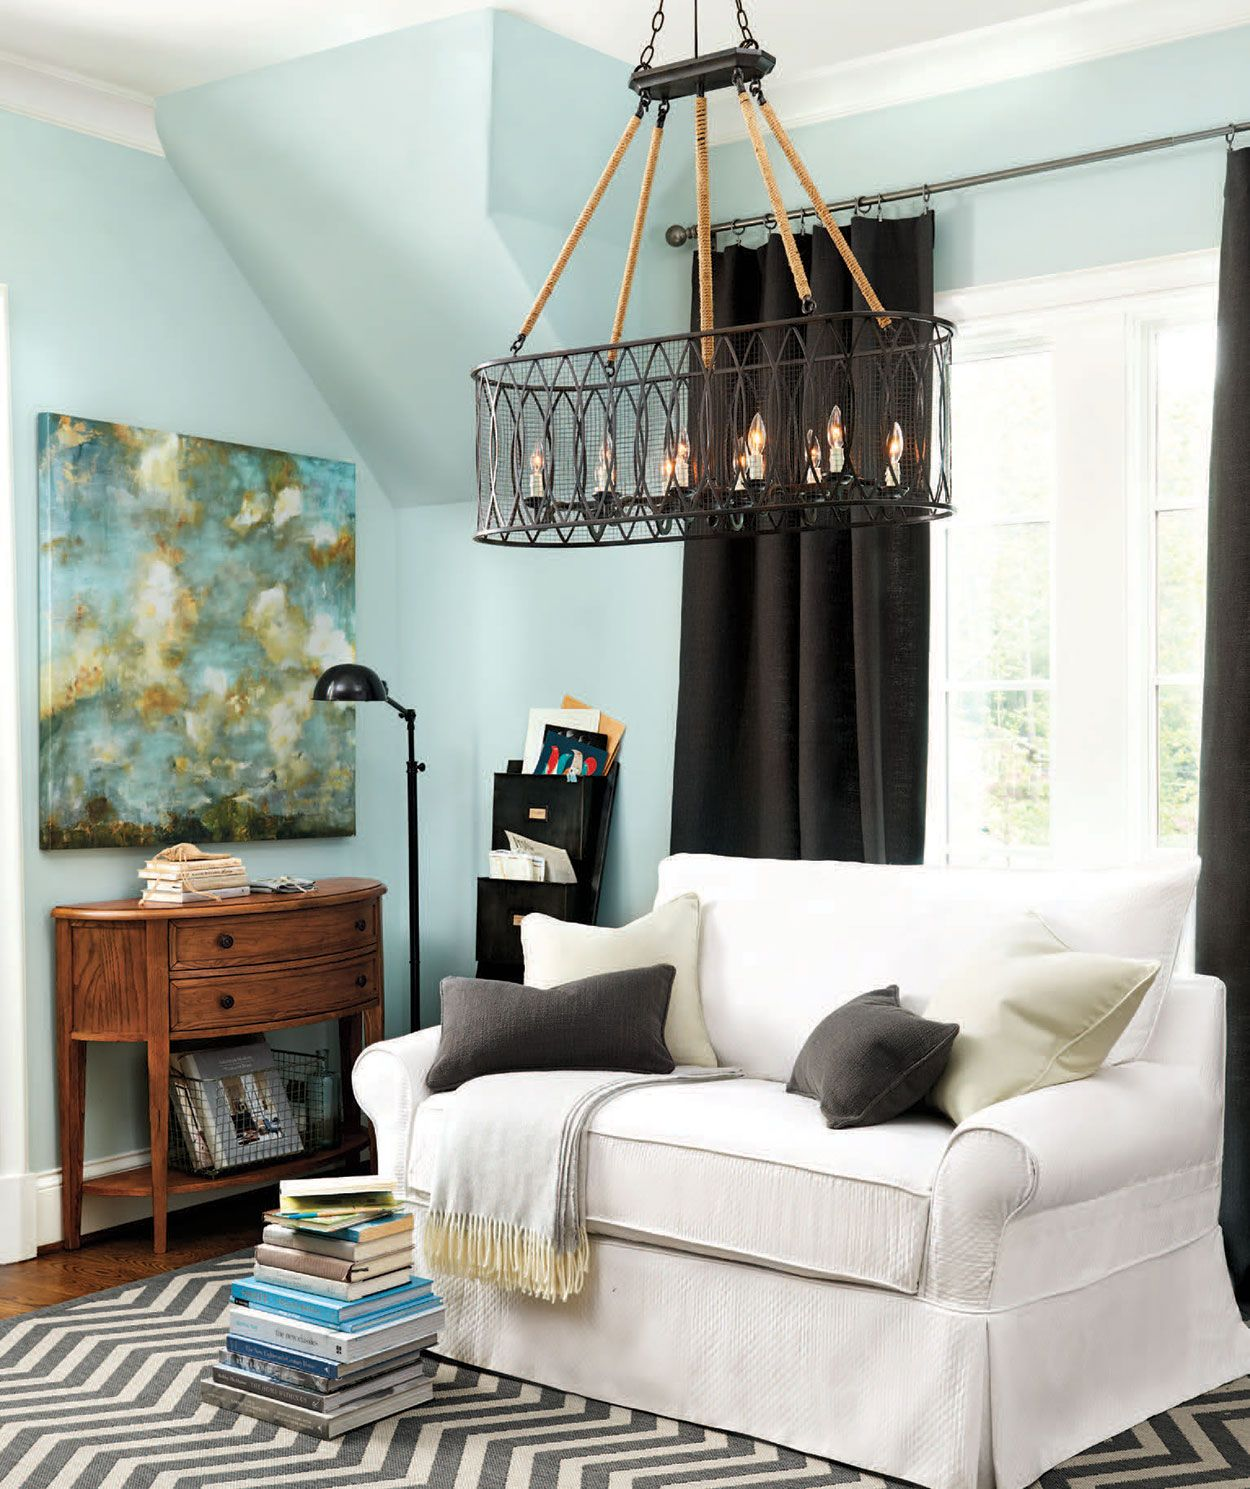 A Hy Wall Color Can Really Boost The Feel Of Your E Whether It S Den Or Home Office